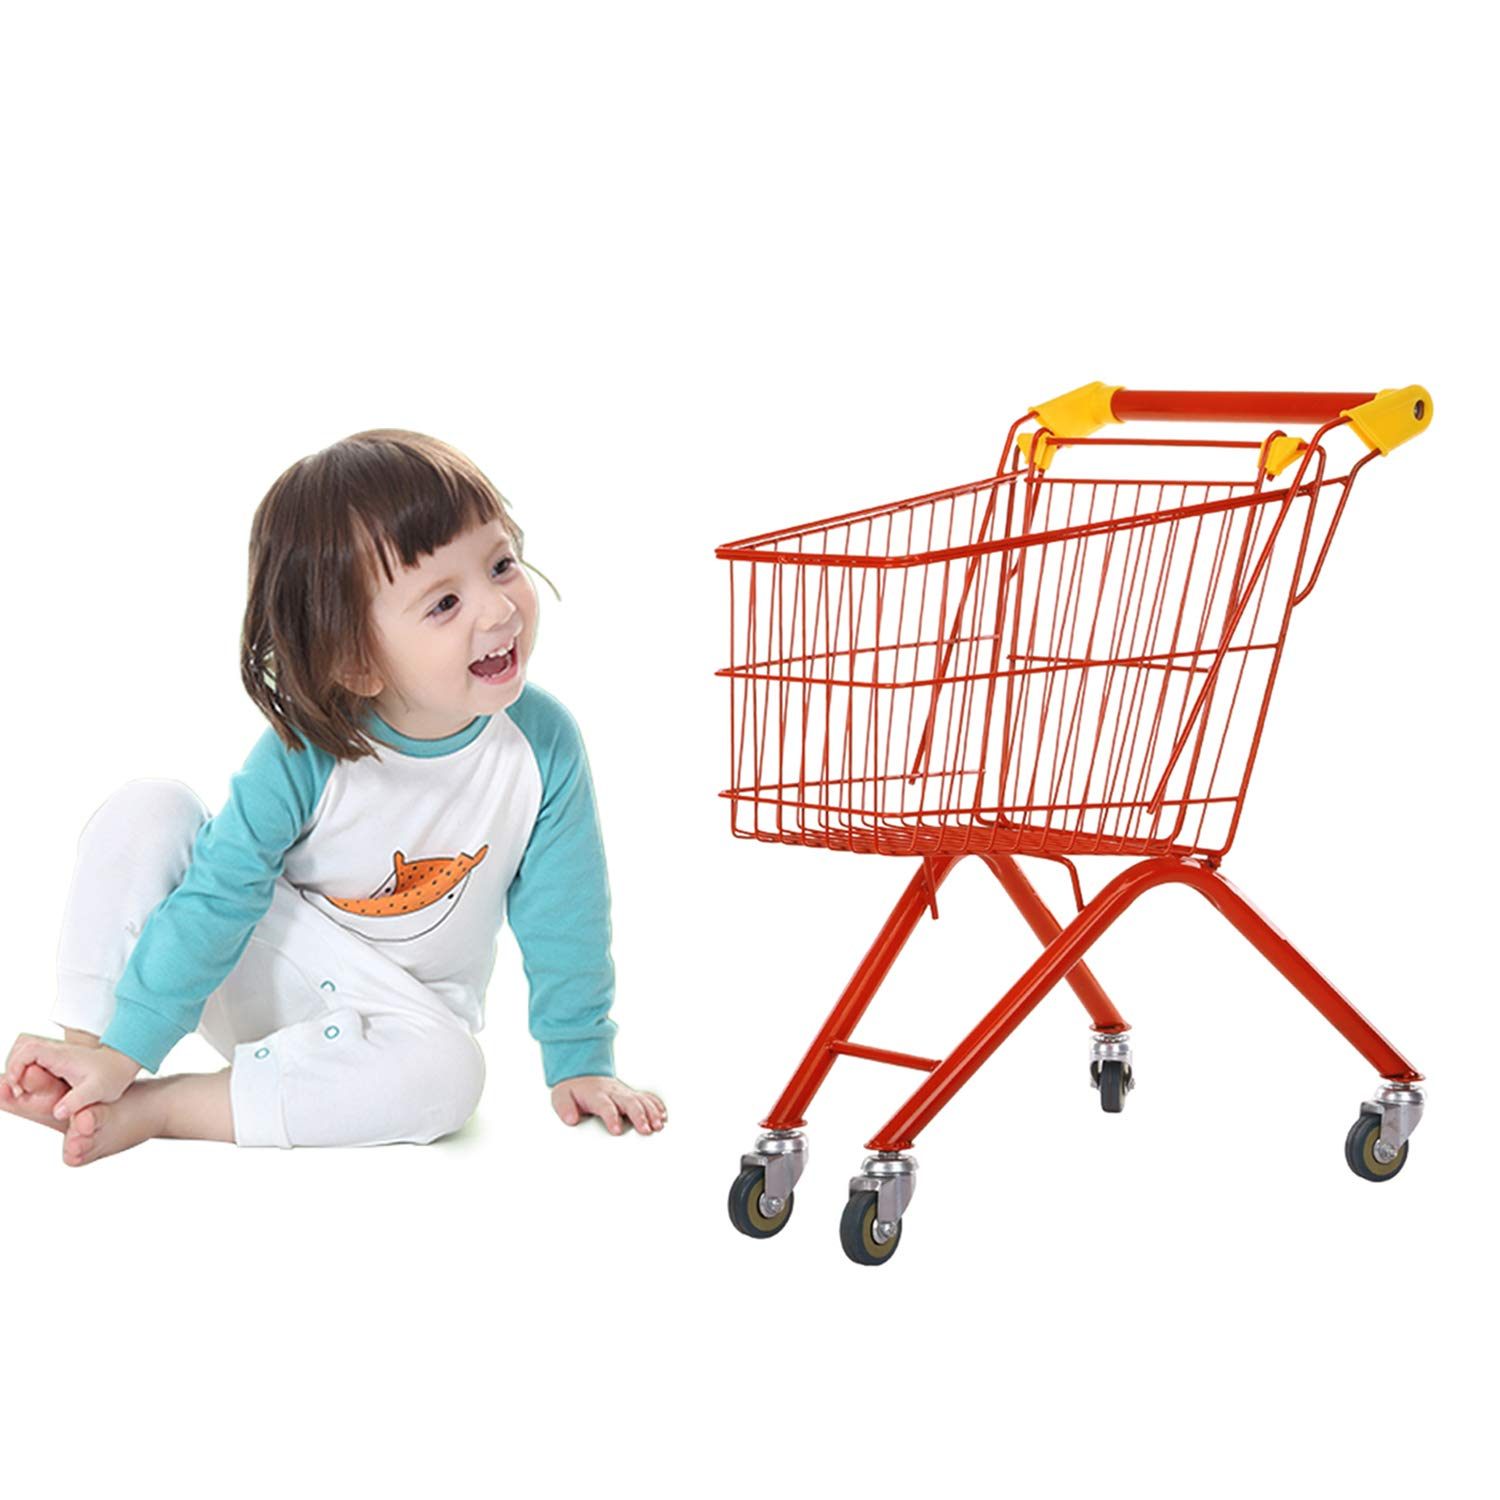 RAINBOW TOYFROG Toy Grocery Cart for Kitchen Play - Shopping Cart Toy | Play Kitchen Accessories - Toy Shopping Cart for Toddlers Solid & Sturdy Metal Steel Frame - Beautiful Colors!